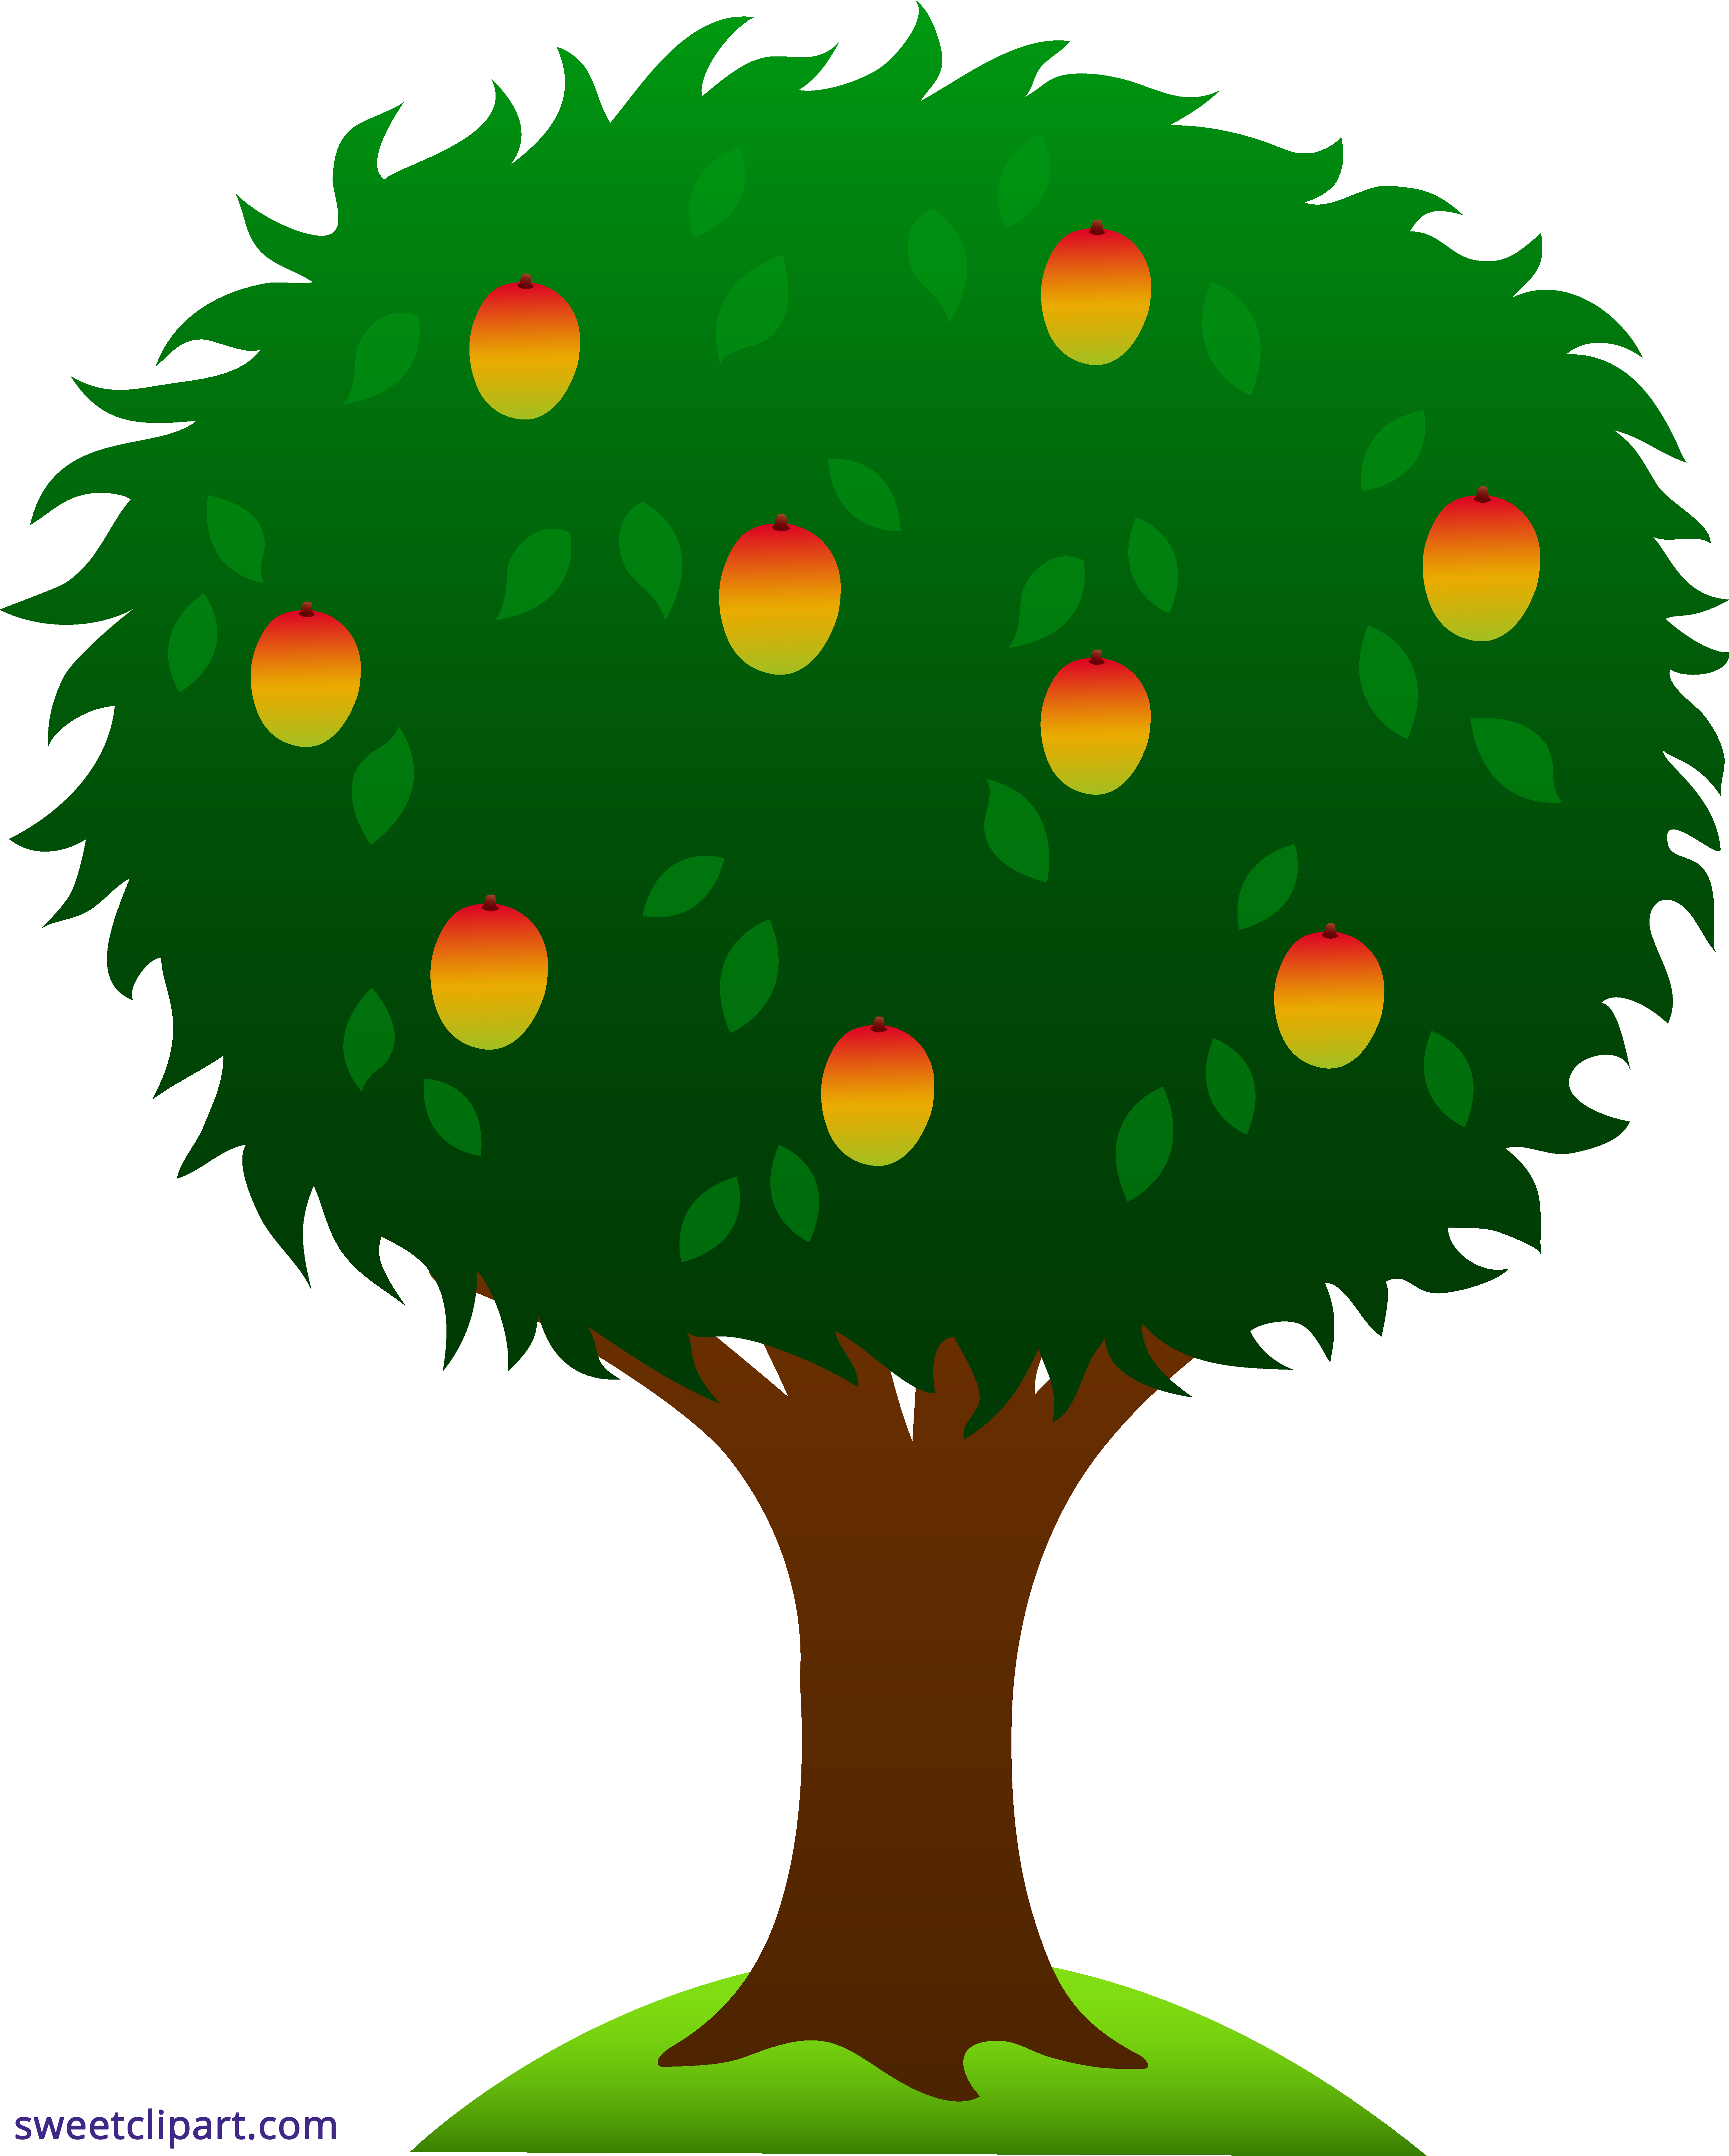 Growth drawing mango tree. Png free library download